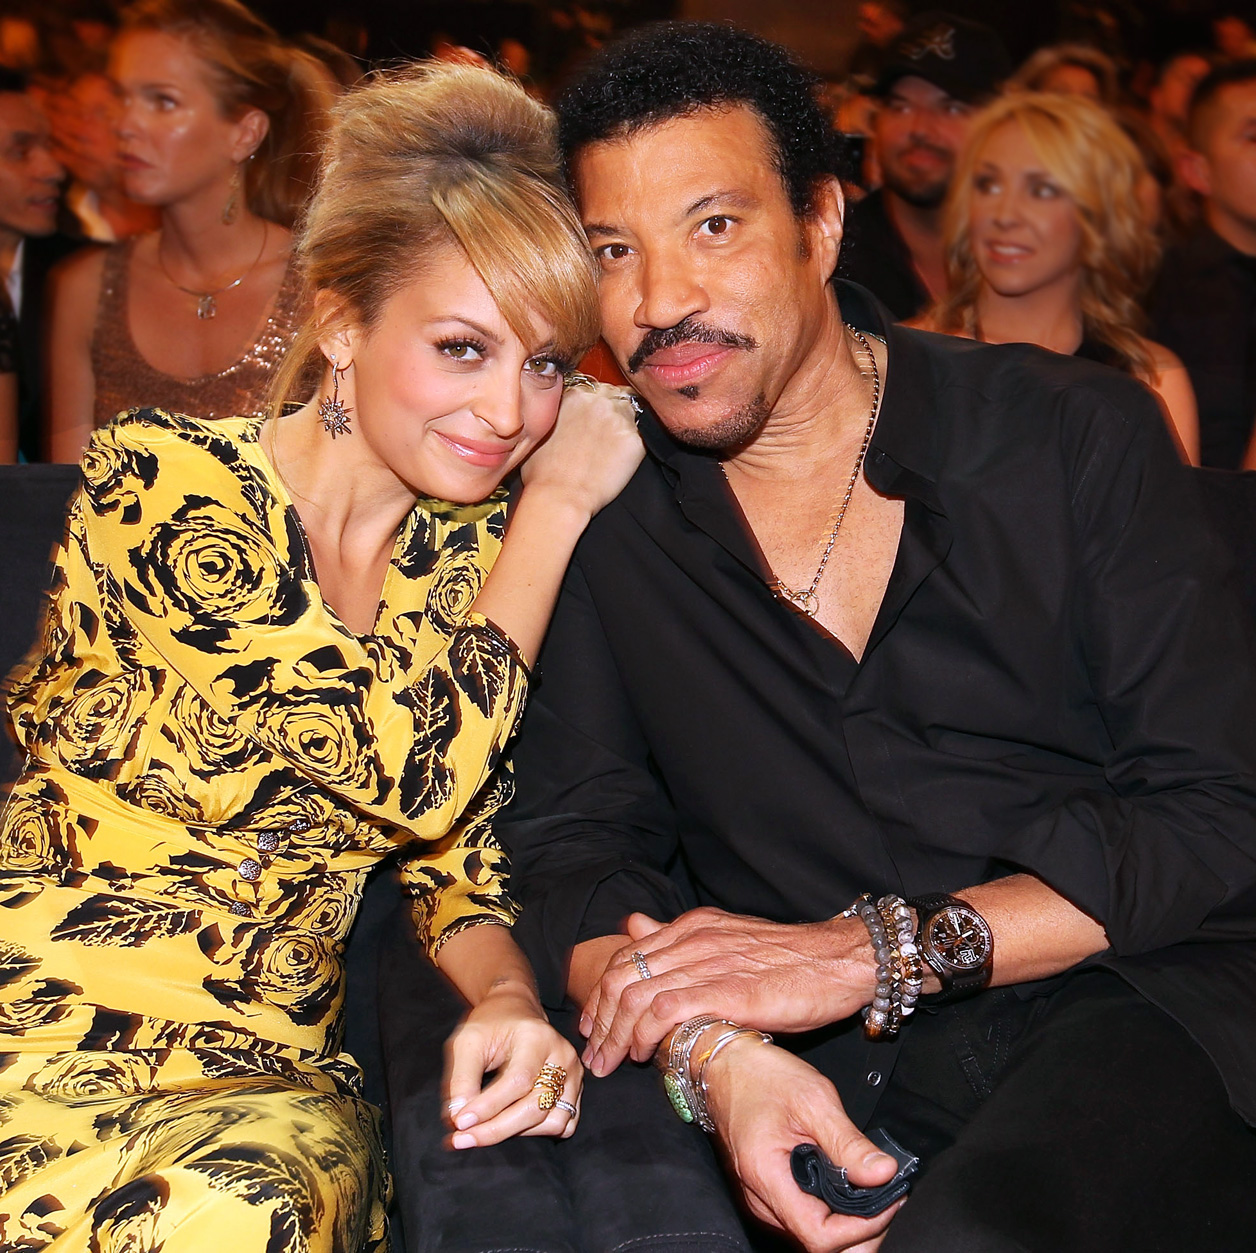 Nicole and Lionel Richie Bust Some Serious Moves in This Hilarious Instagram Video